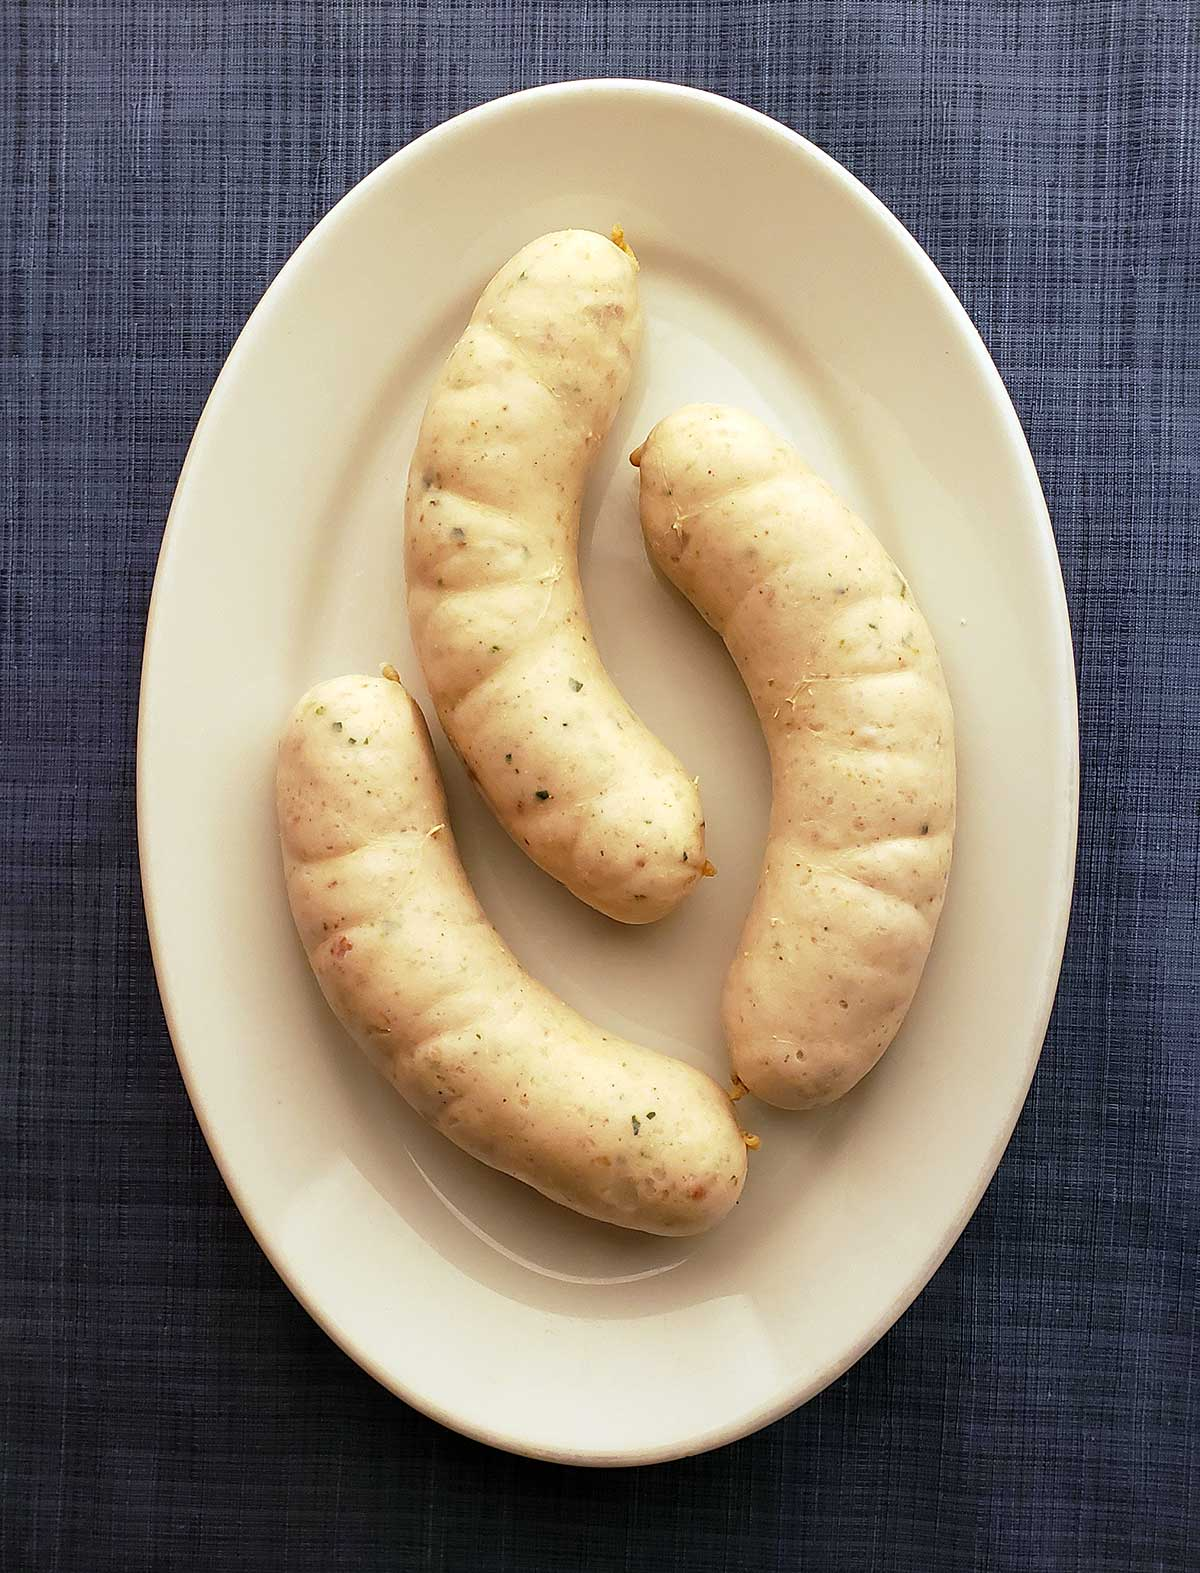 Three links of weisswurst on a plate